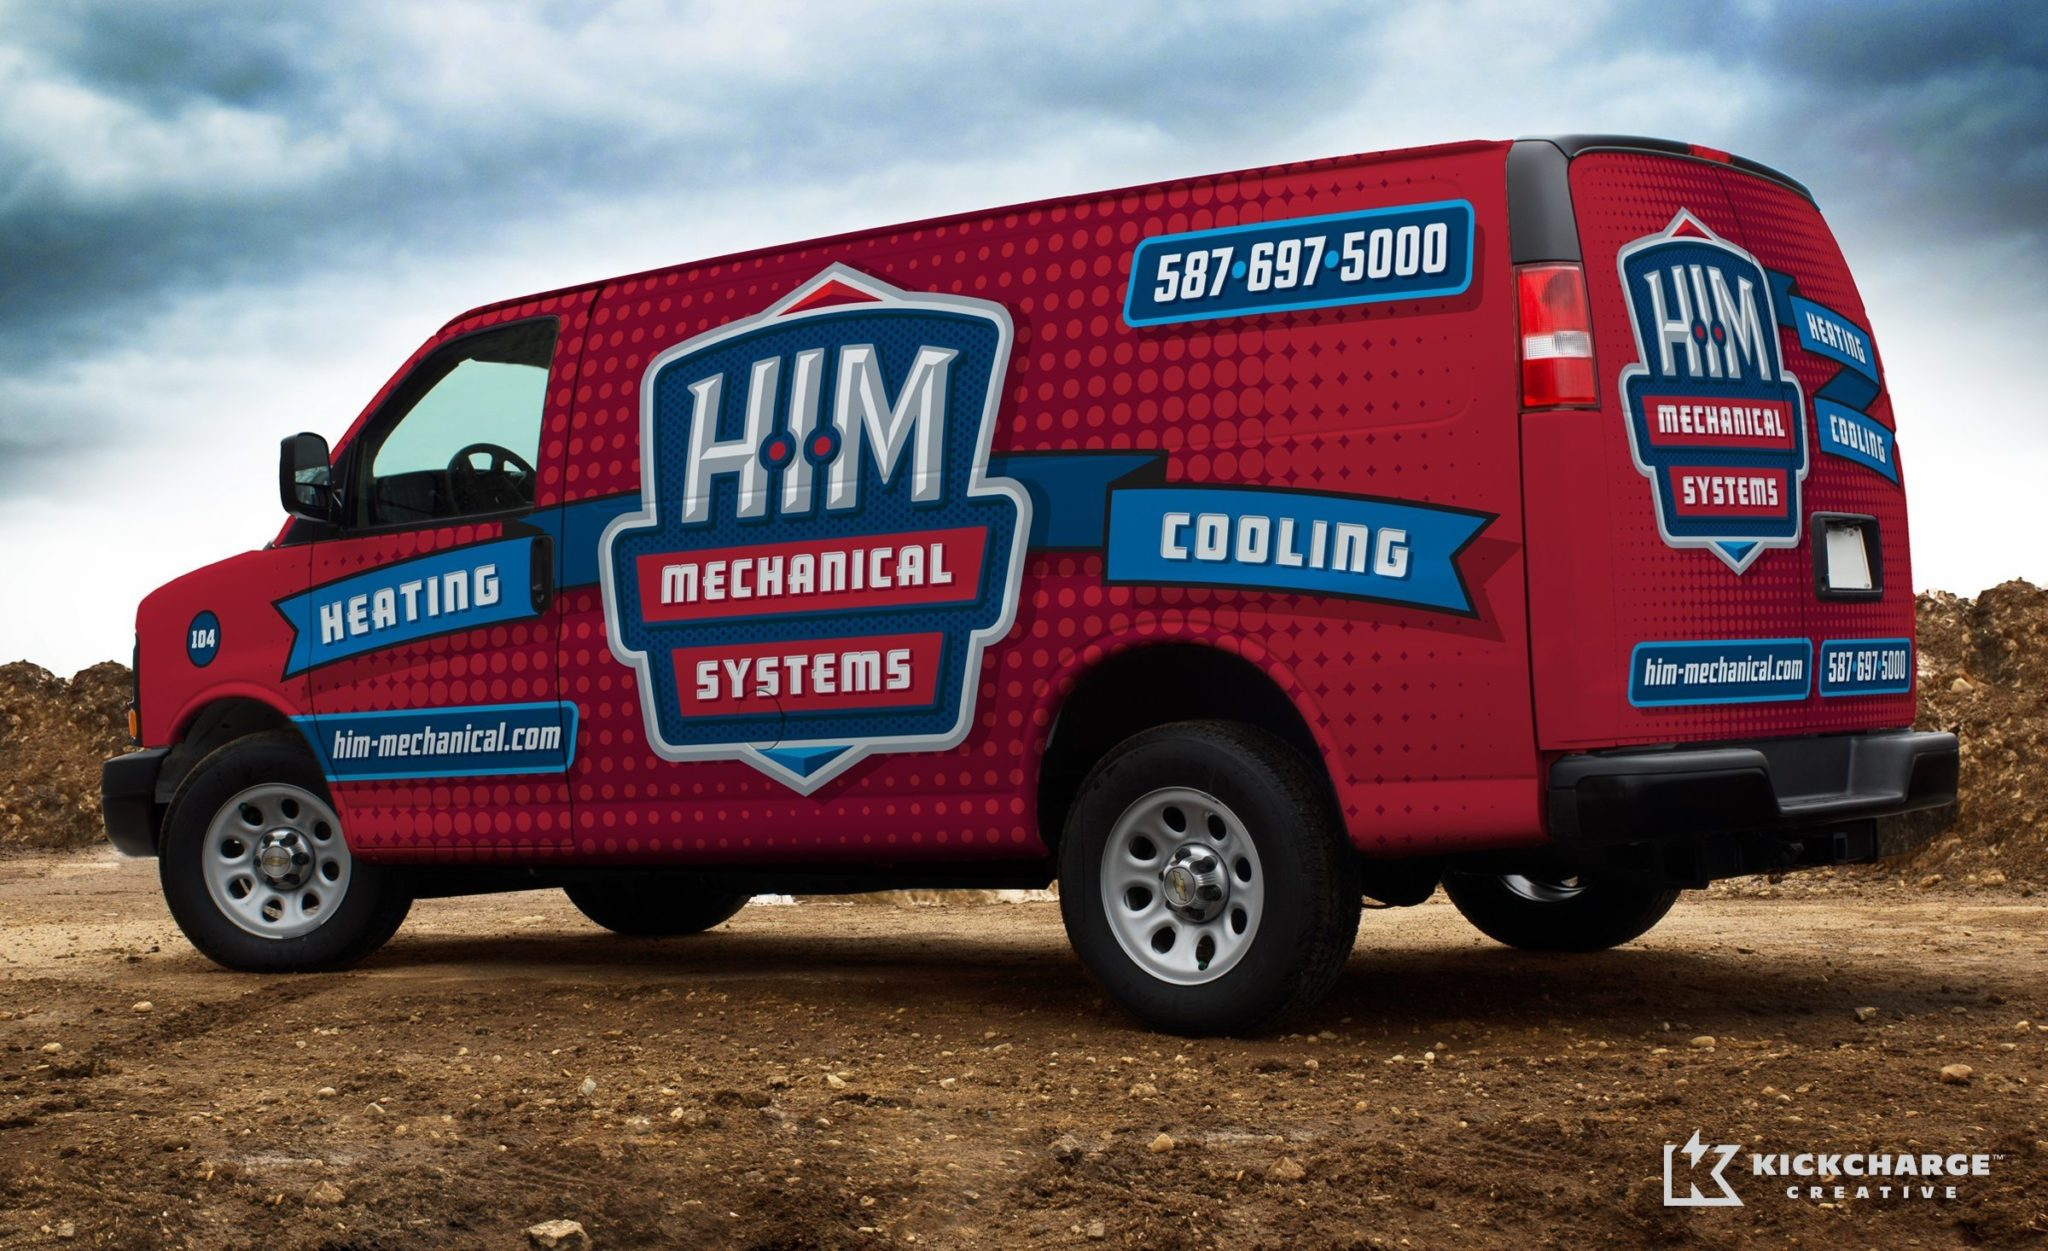 Sometimes the best trucks wraps are simple—as this example for a Bridgewater, MA based HVAC company shows.